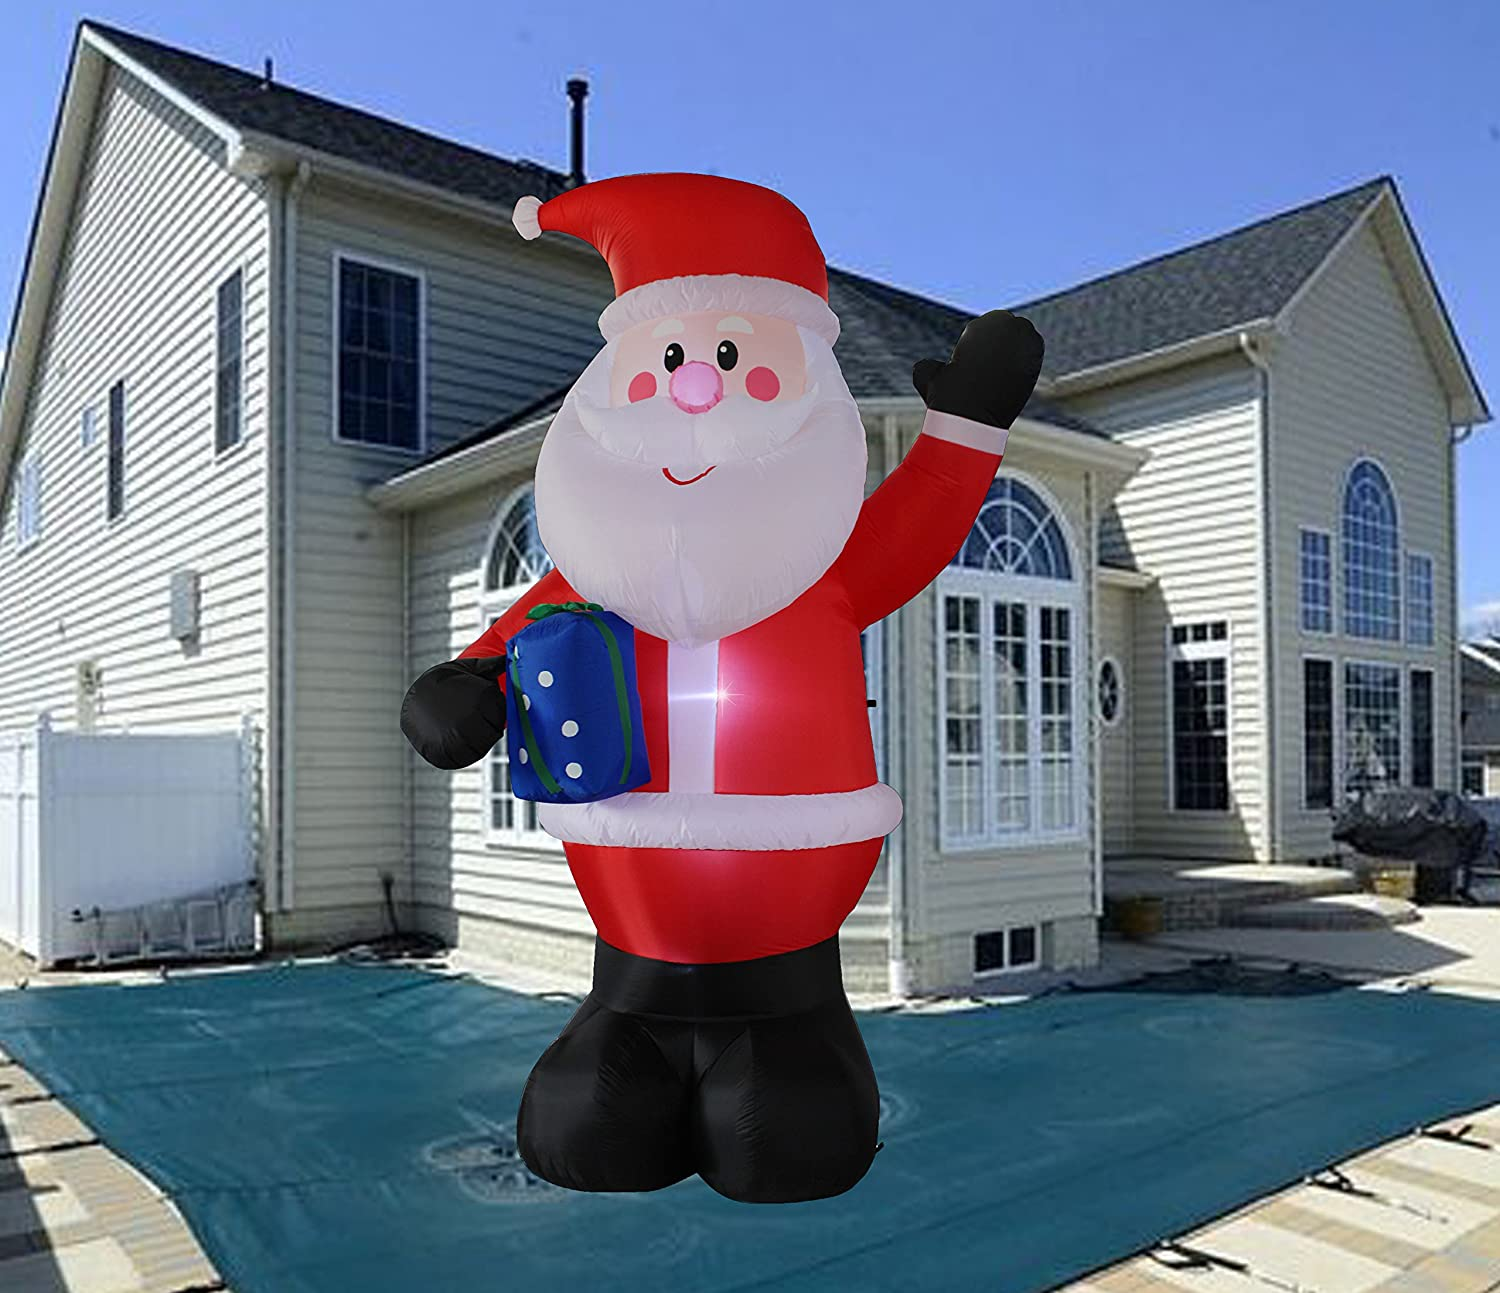 Best Christmas Decorations Fort Lauderdale: Inflatable Santa Christmas Decor Indoor Outdoor Yard Decor